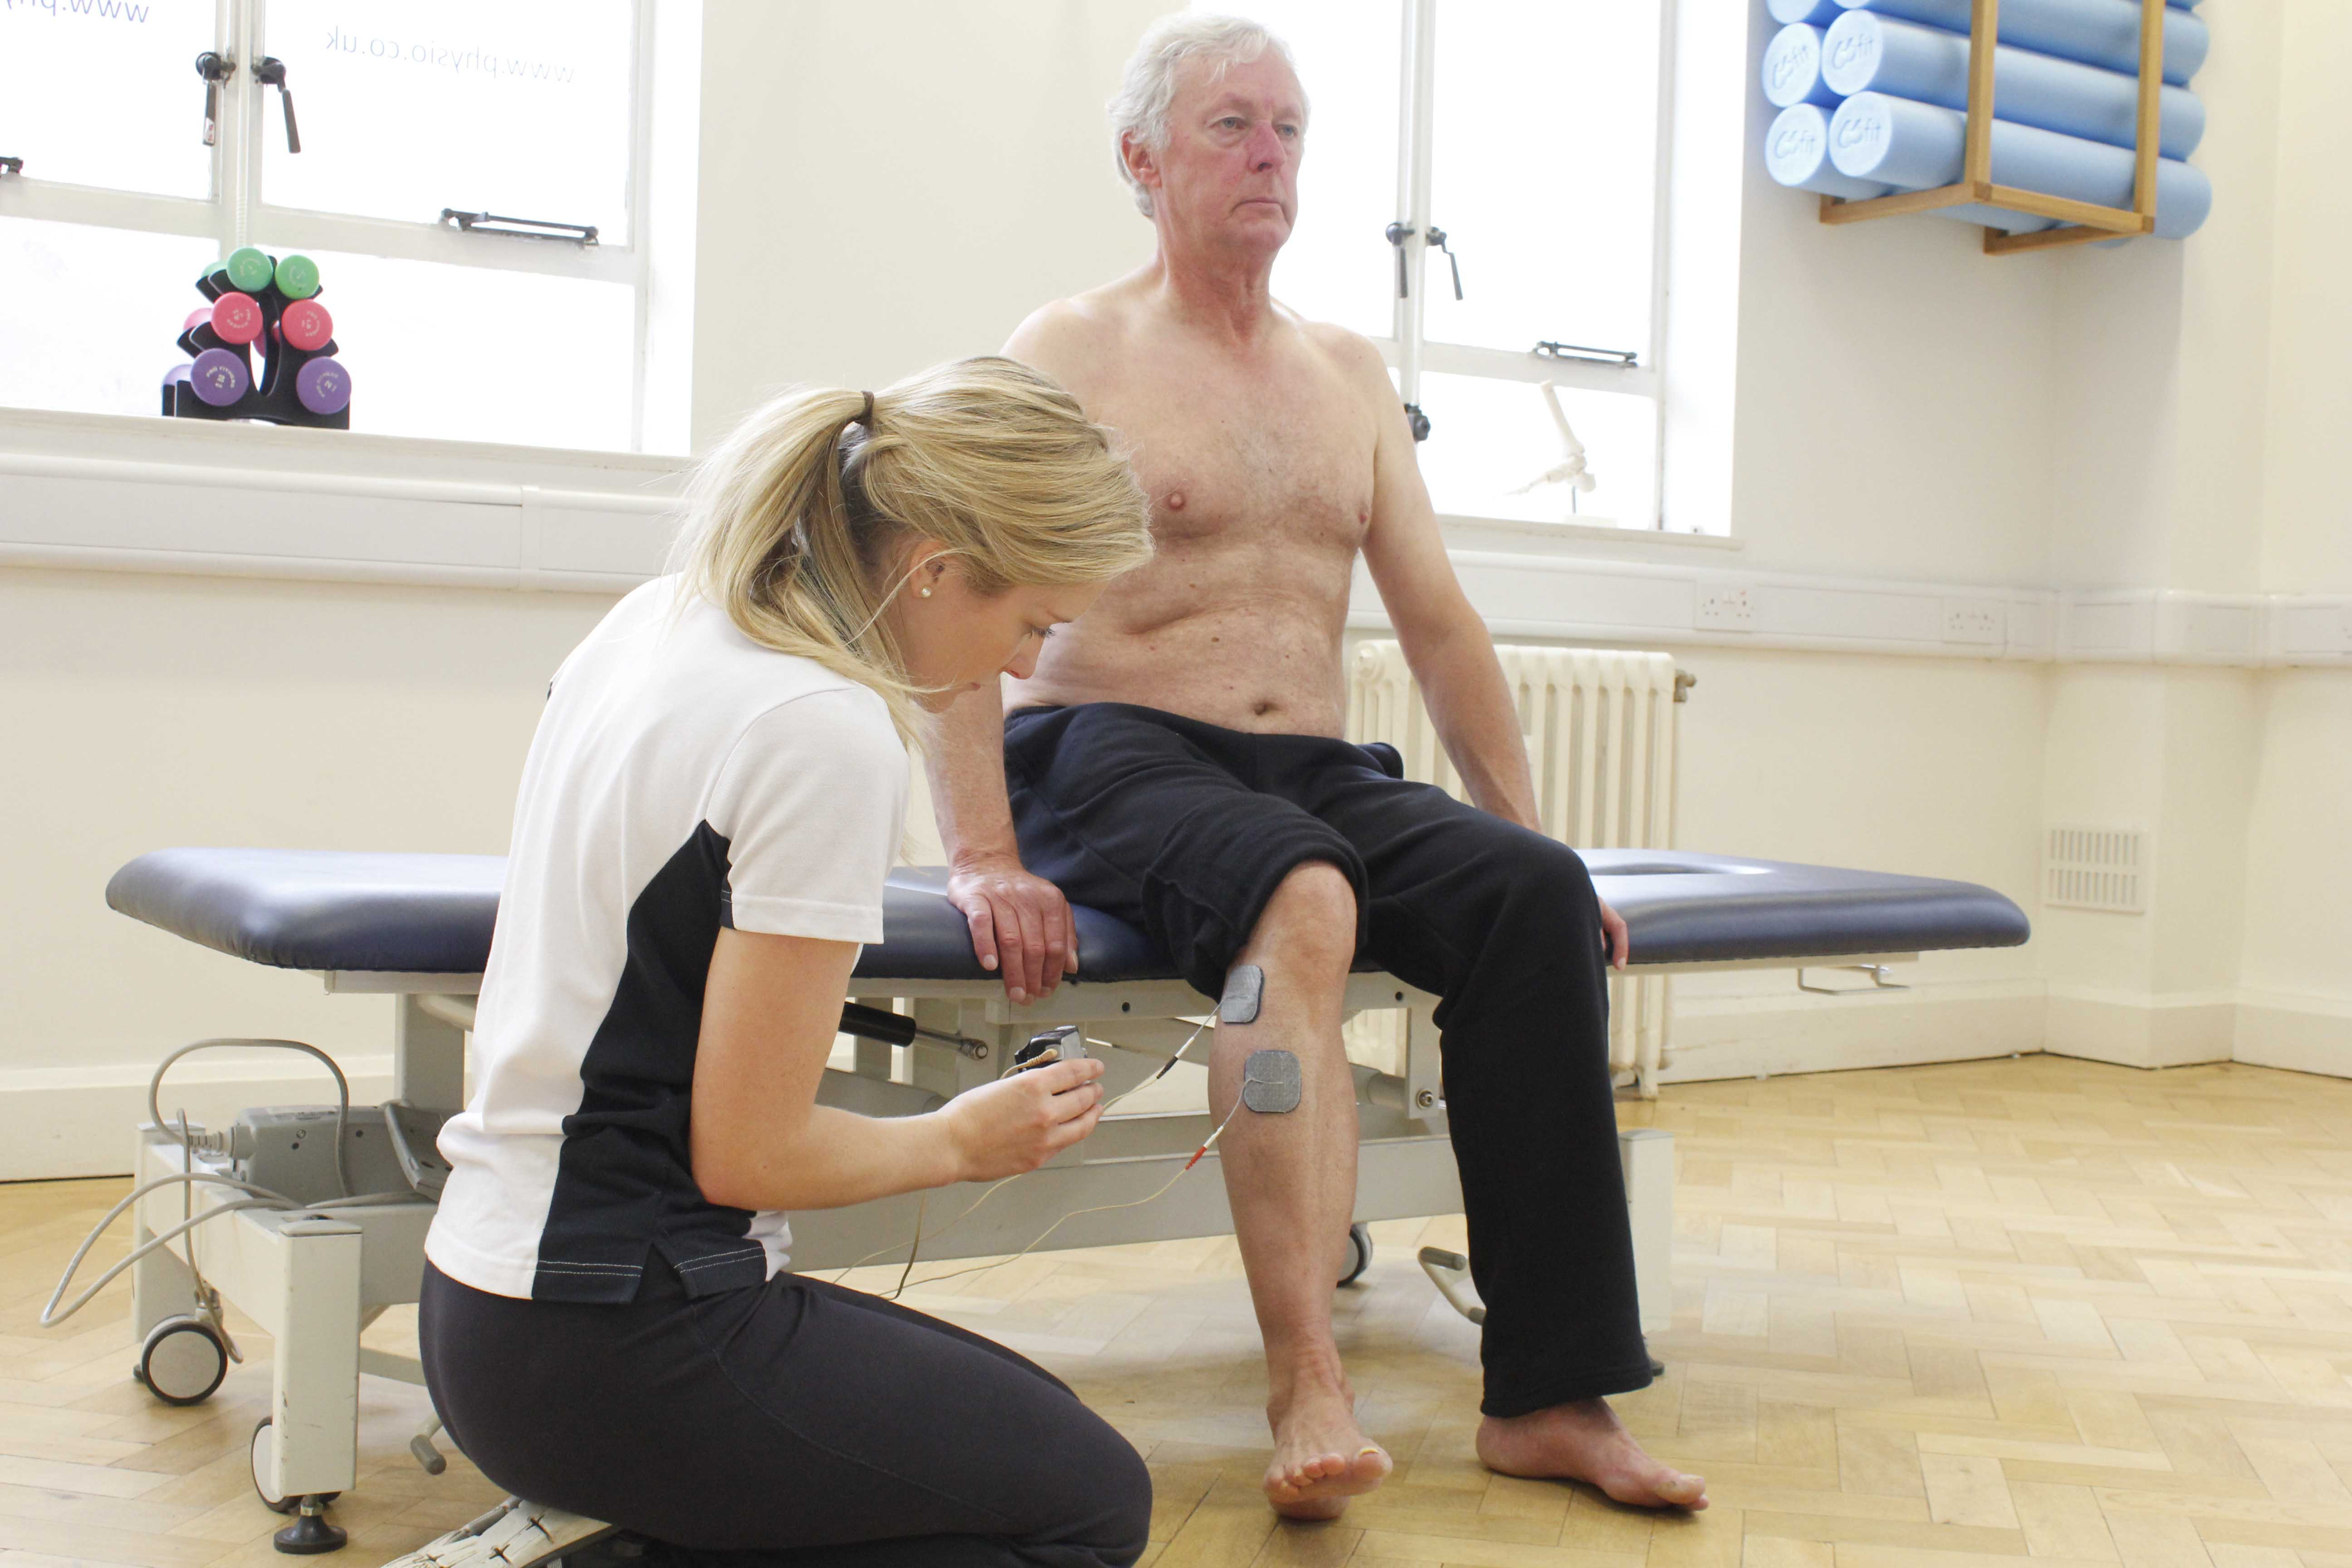 Physiotherapist applying Functional Electrical Stimulation pads to ankle flexor muscles